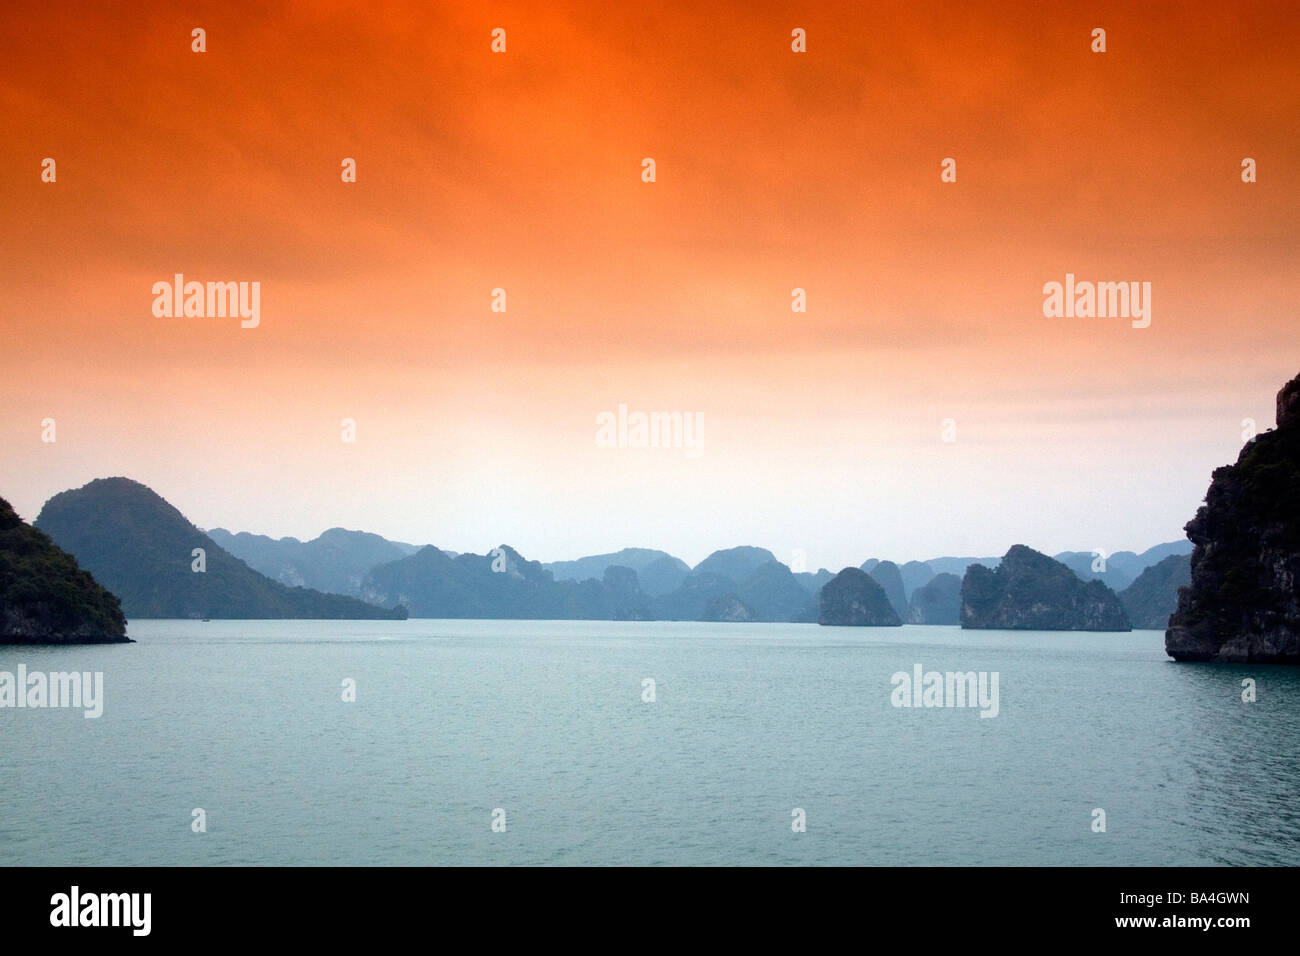 Misty morning views of Ha Long Bay Vietnam - Stock Image